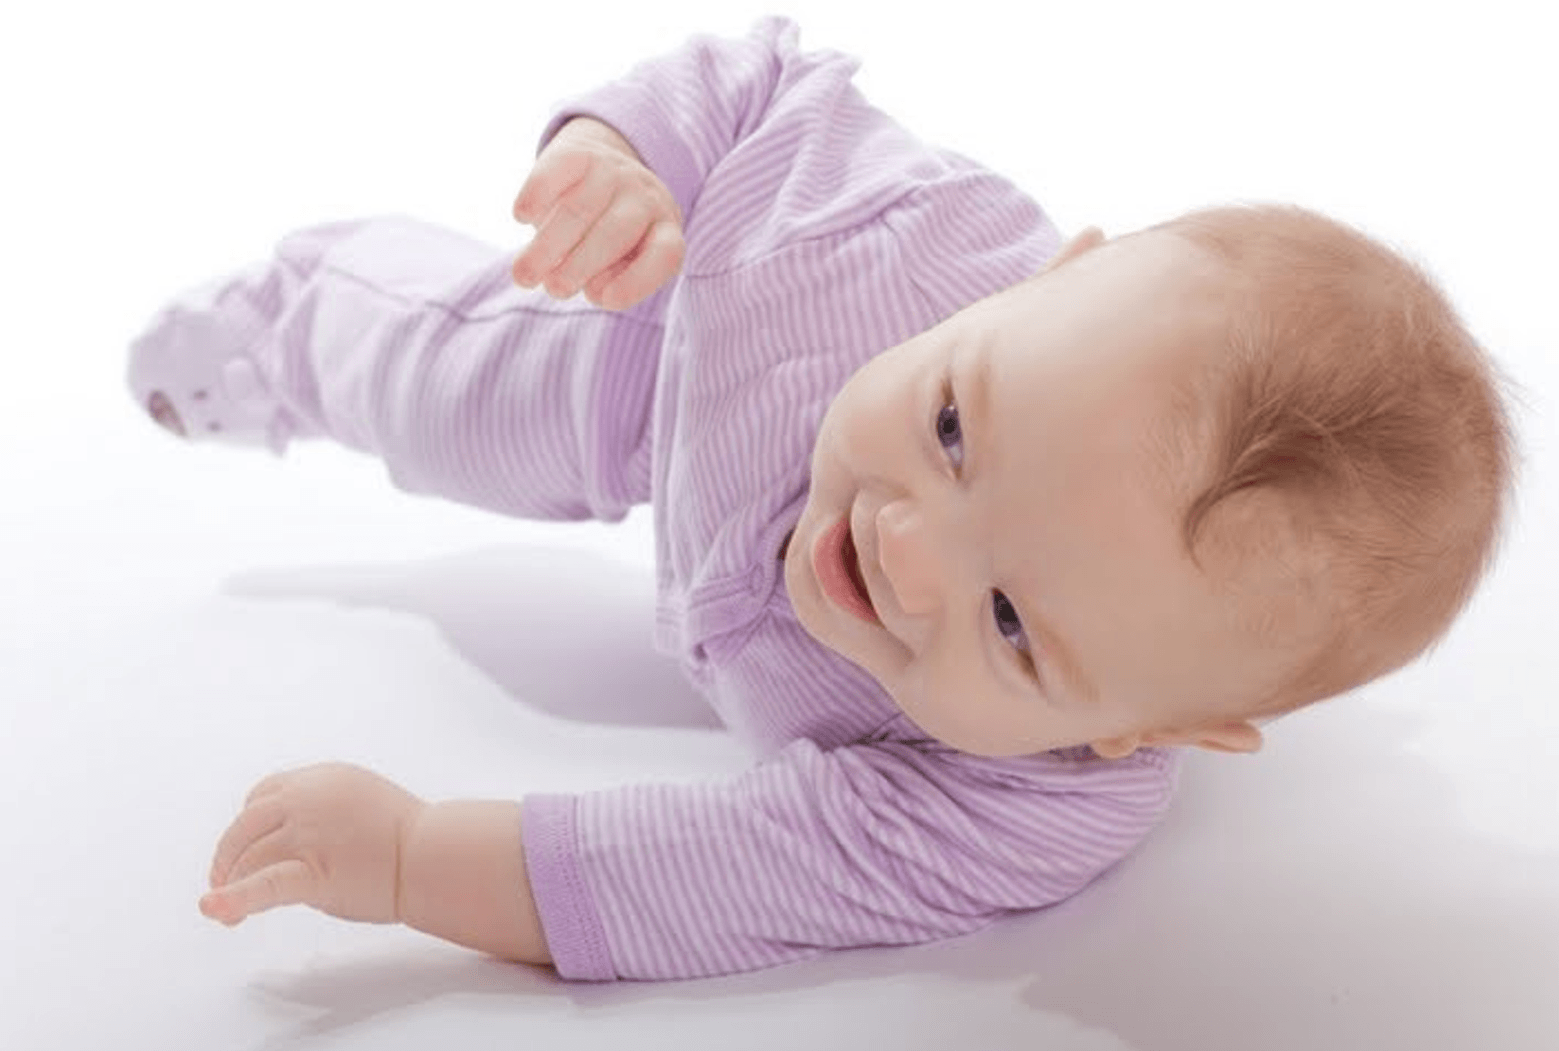 When Do Babies Roll Over? - Baby Stoller Lab